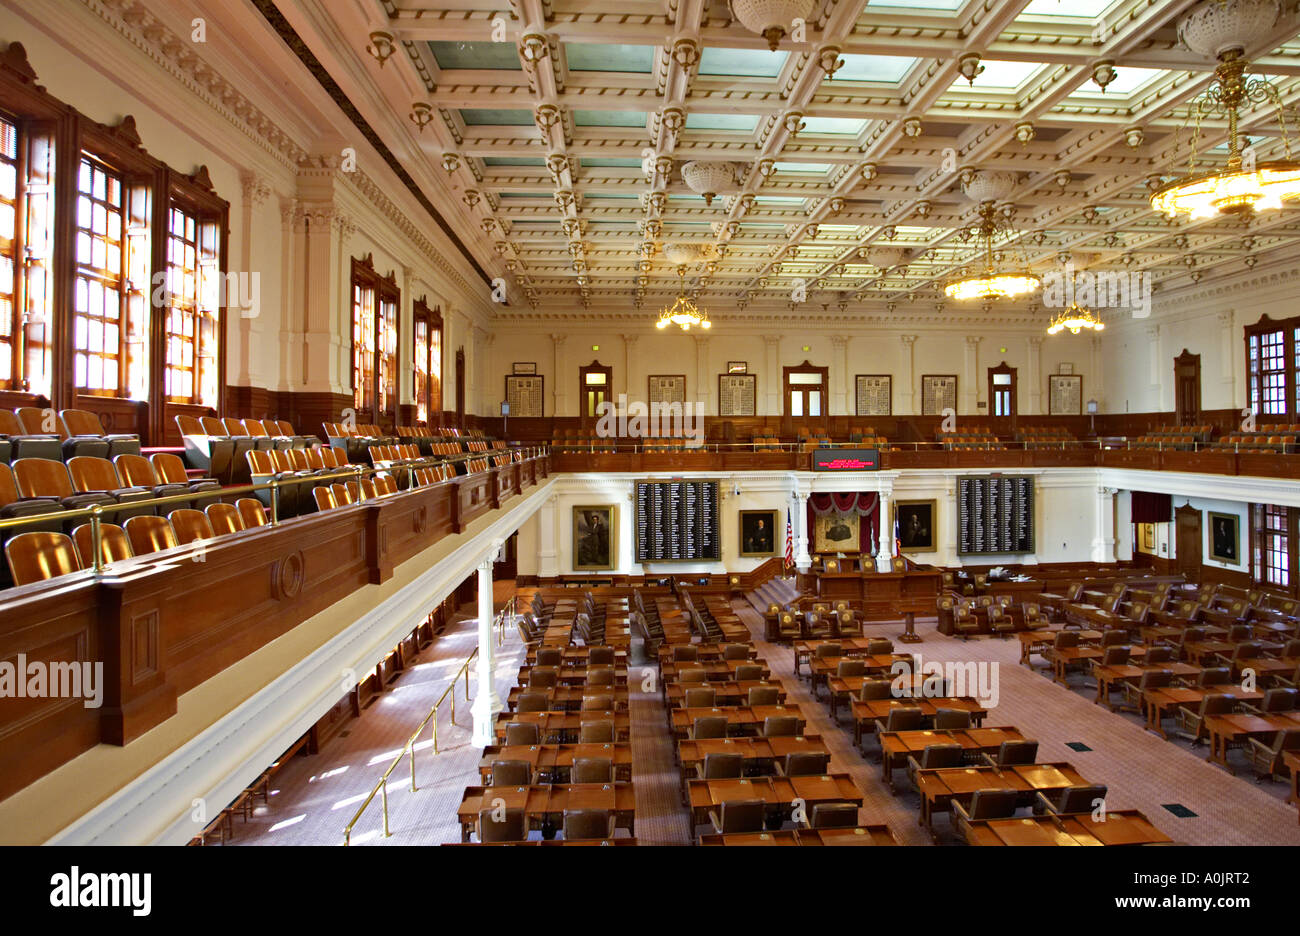 Texas Austin House Of Representatives State Capitol Building Interior Stock Photo Royalty Free